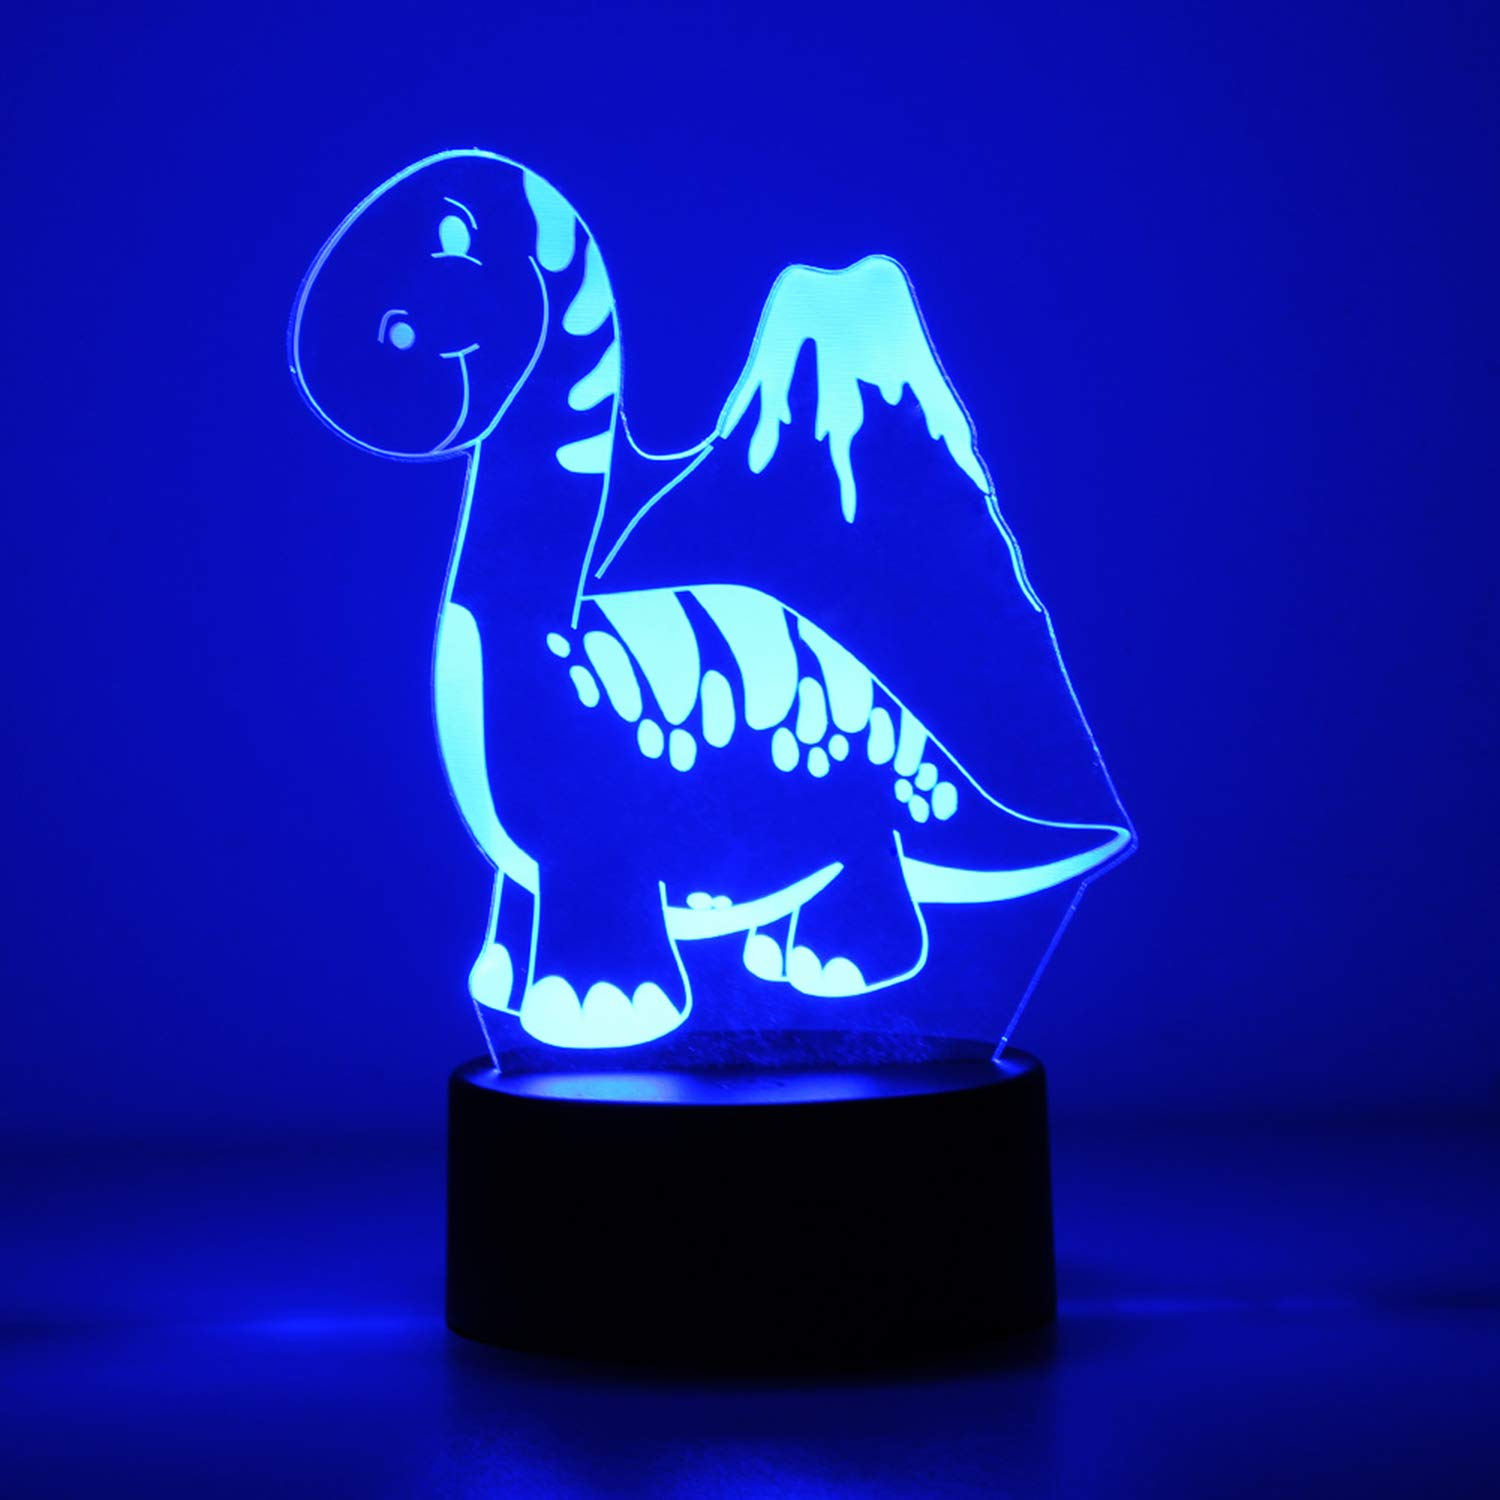 OYE HOYE 3D LED Lamp Night Light with Remote Controller, USB & Battery Powered, Touch Sensor Base, 3D Visualization 15+ Color Table Light for Home Decor, Color Changing Desk Light